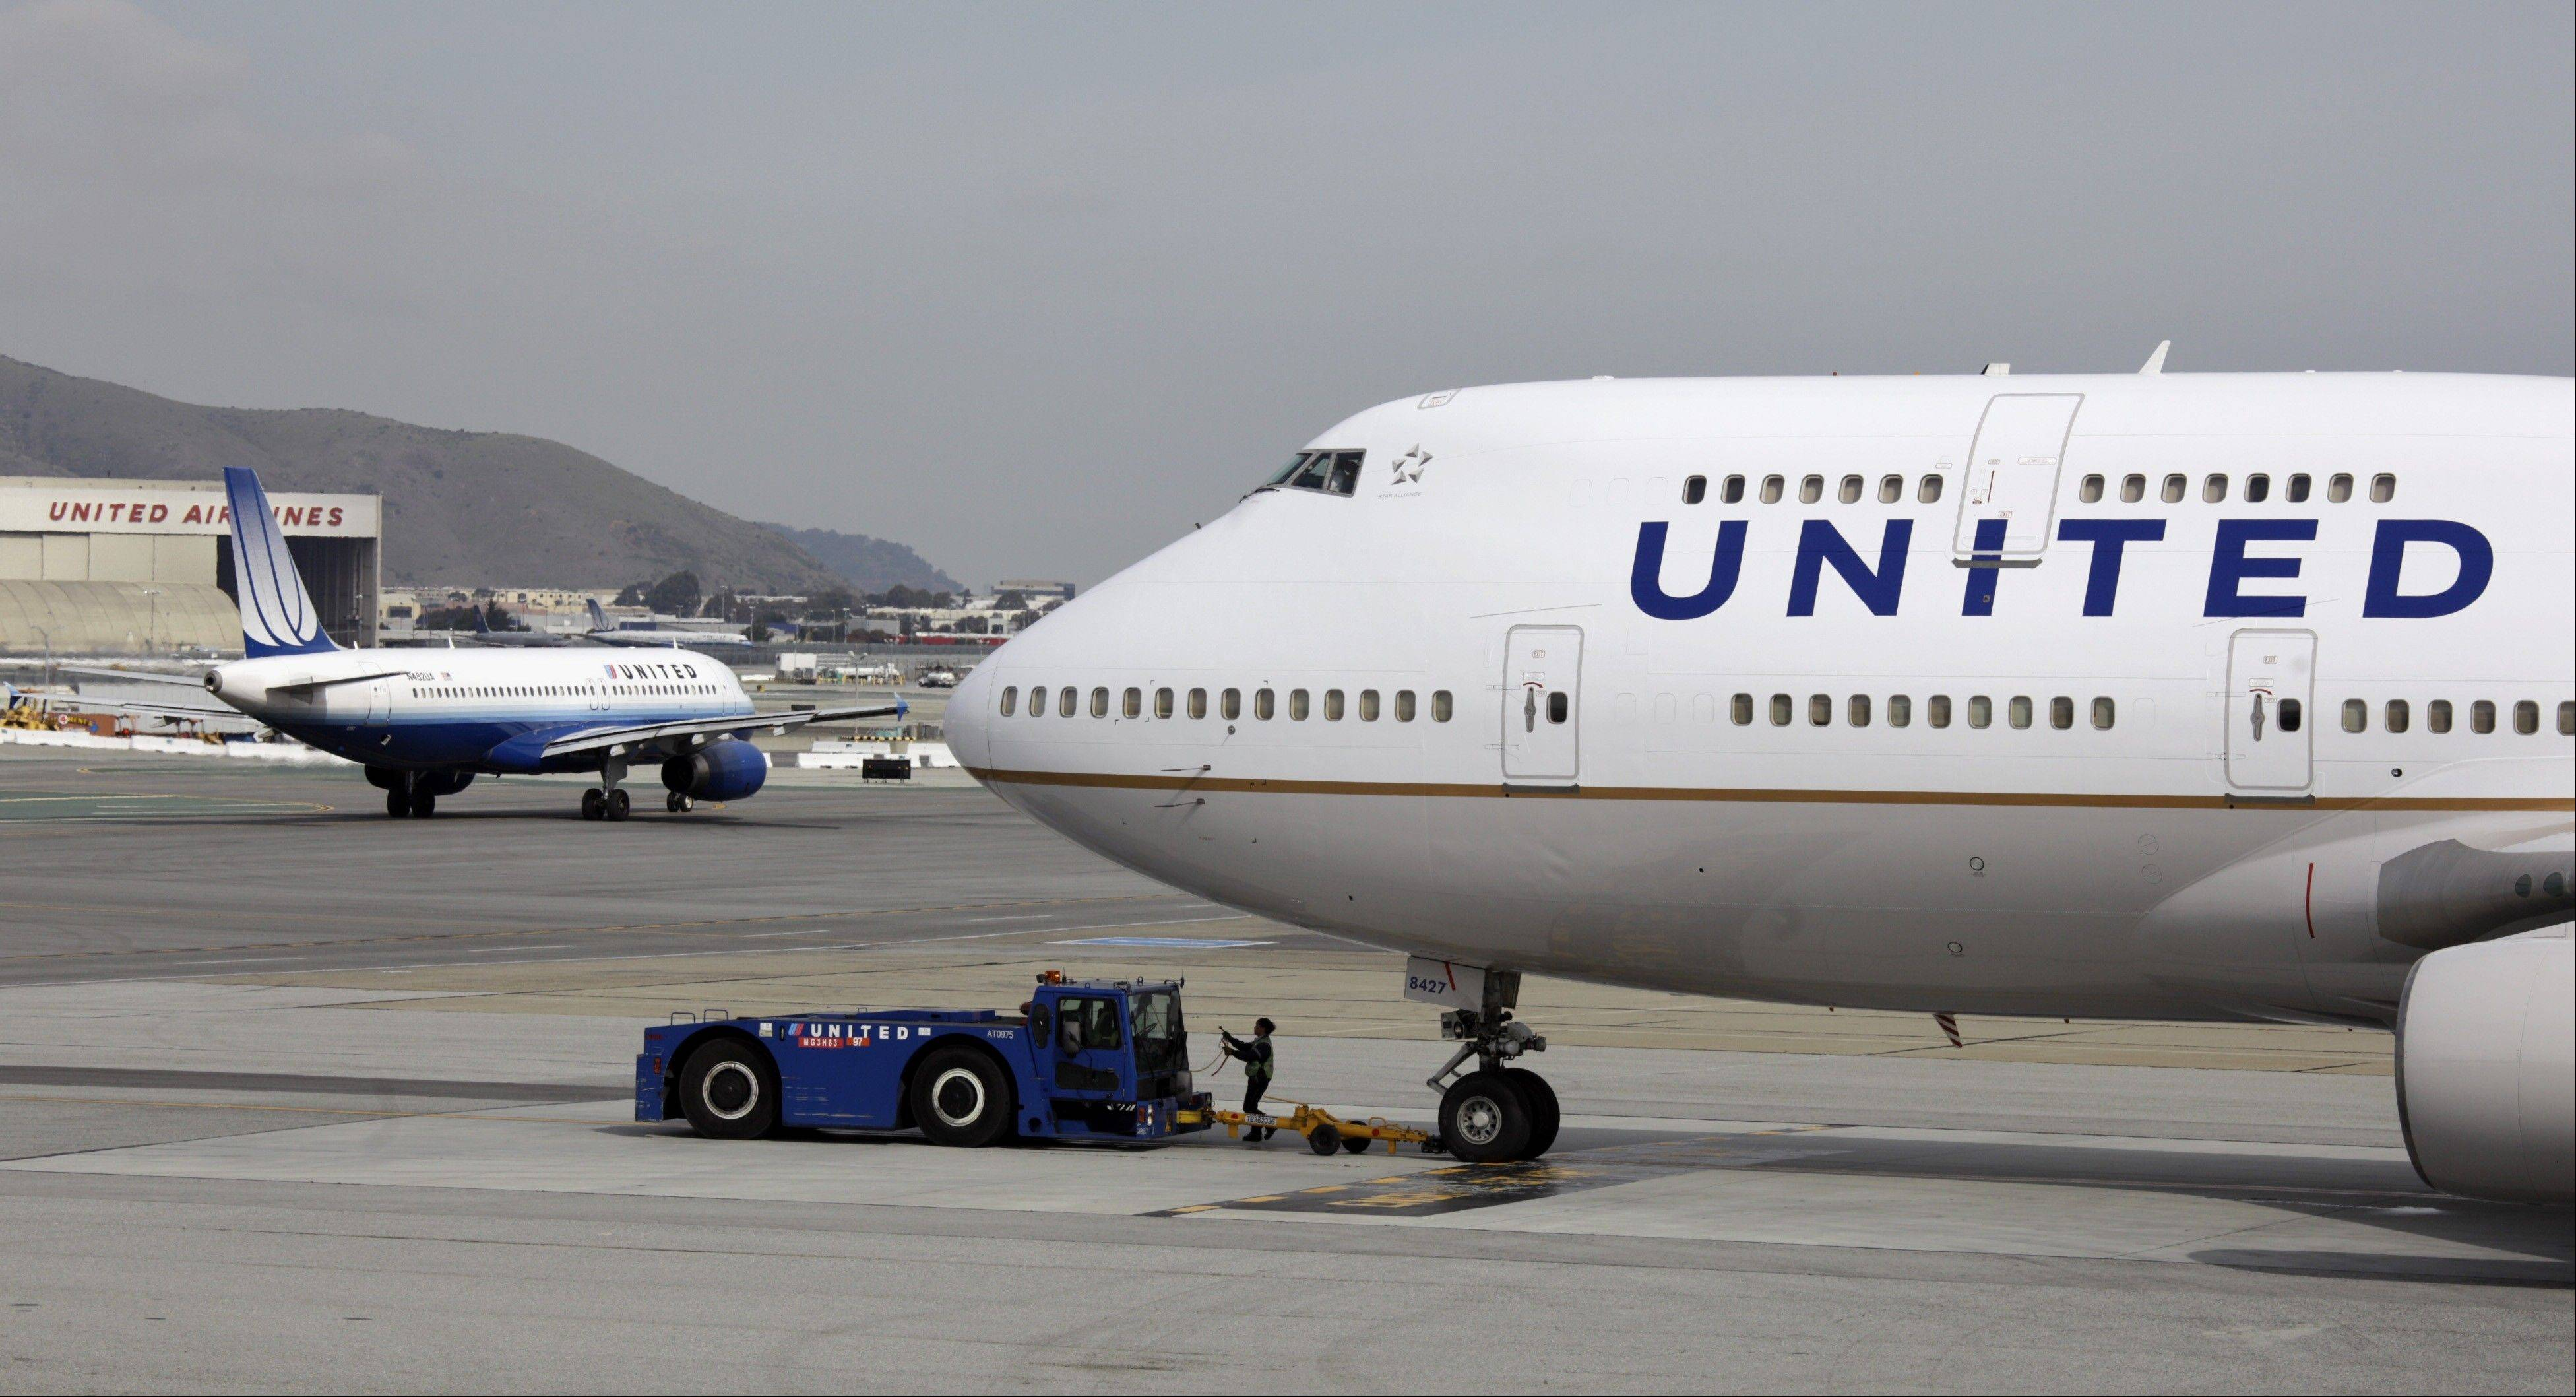 United Airlines planes taxi at San Francisco International Airport.